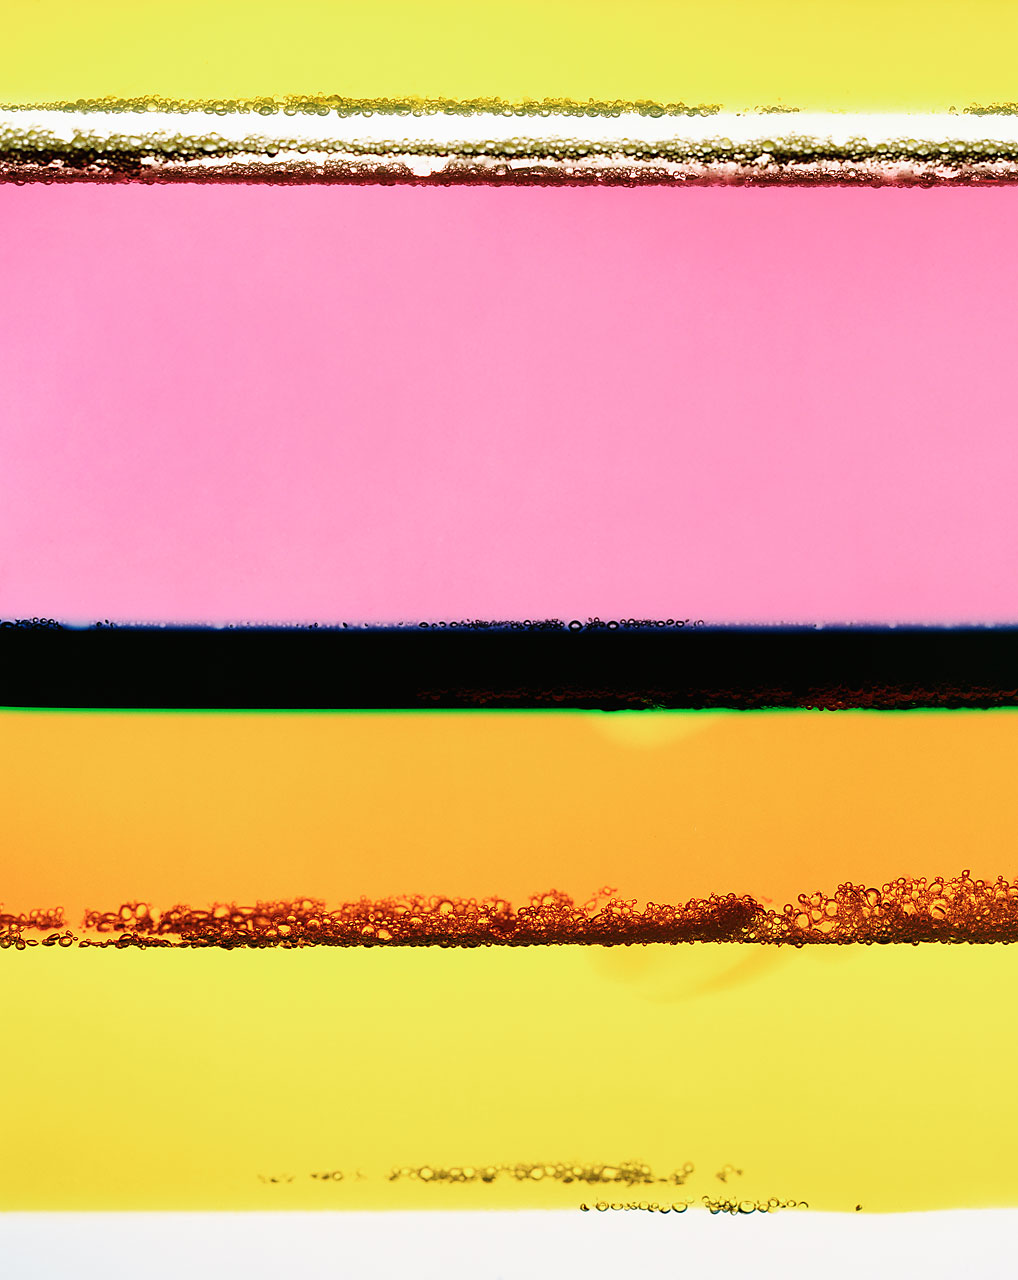 Sabine-Scheer-liquid-photography-rothko